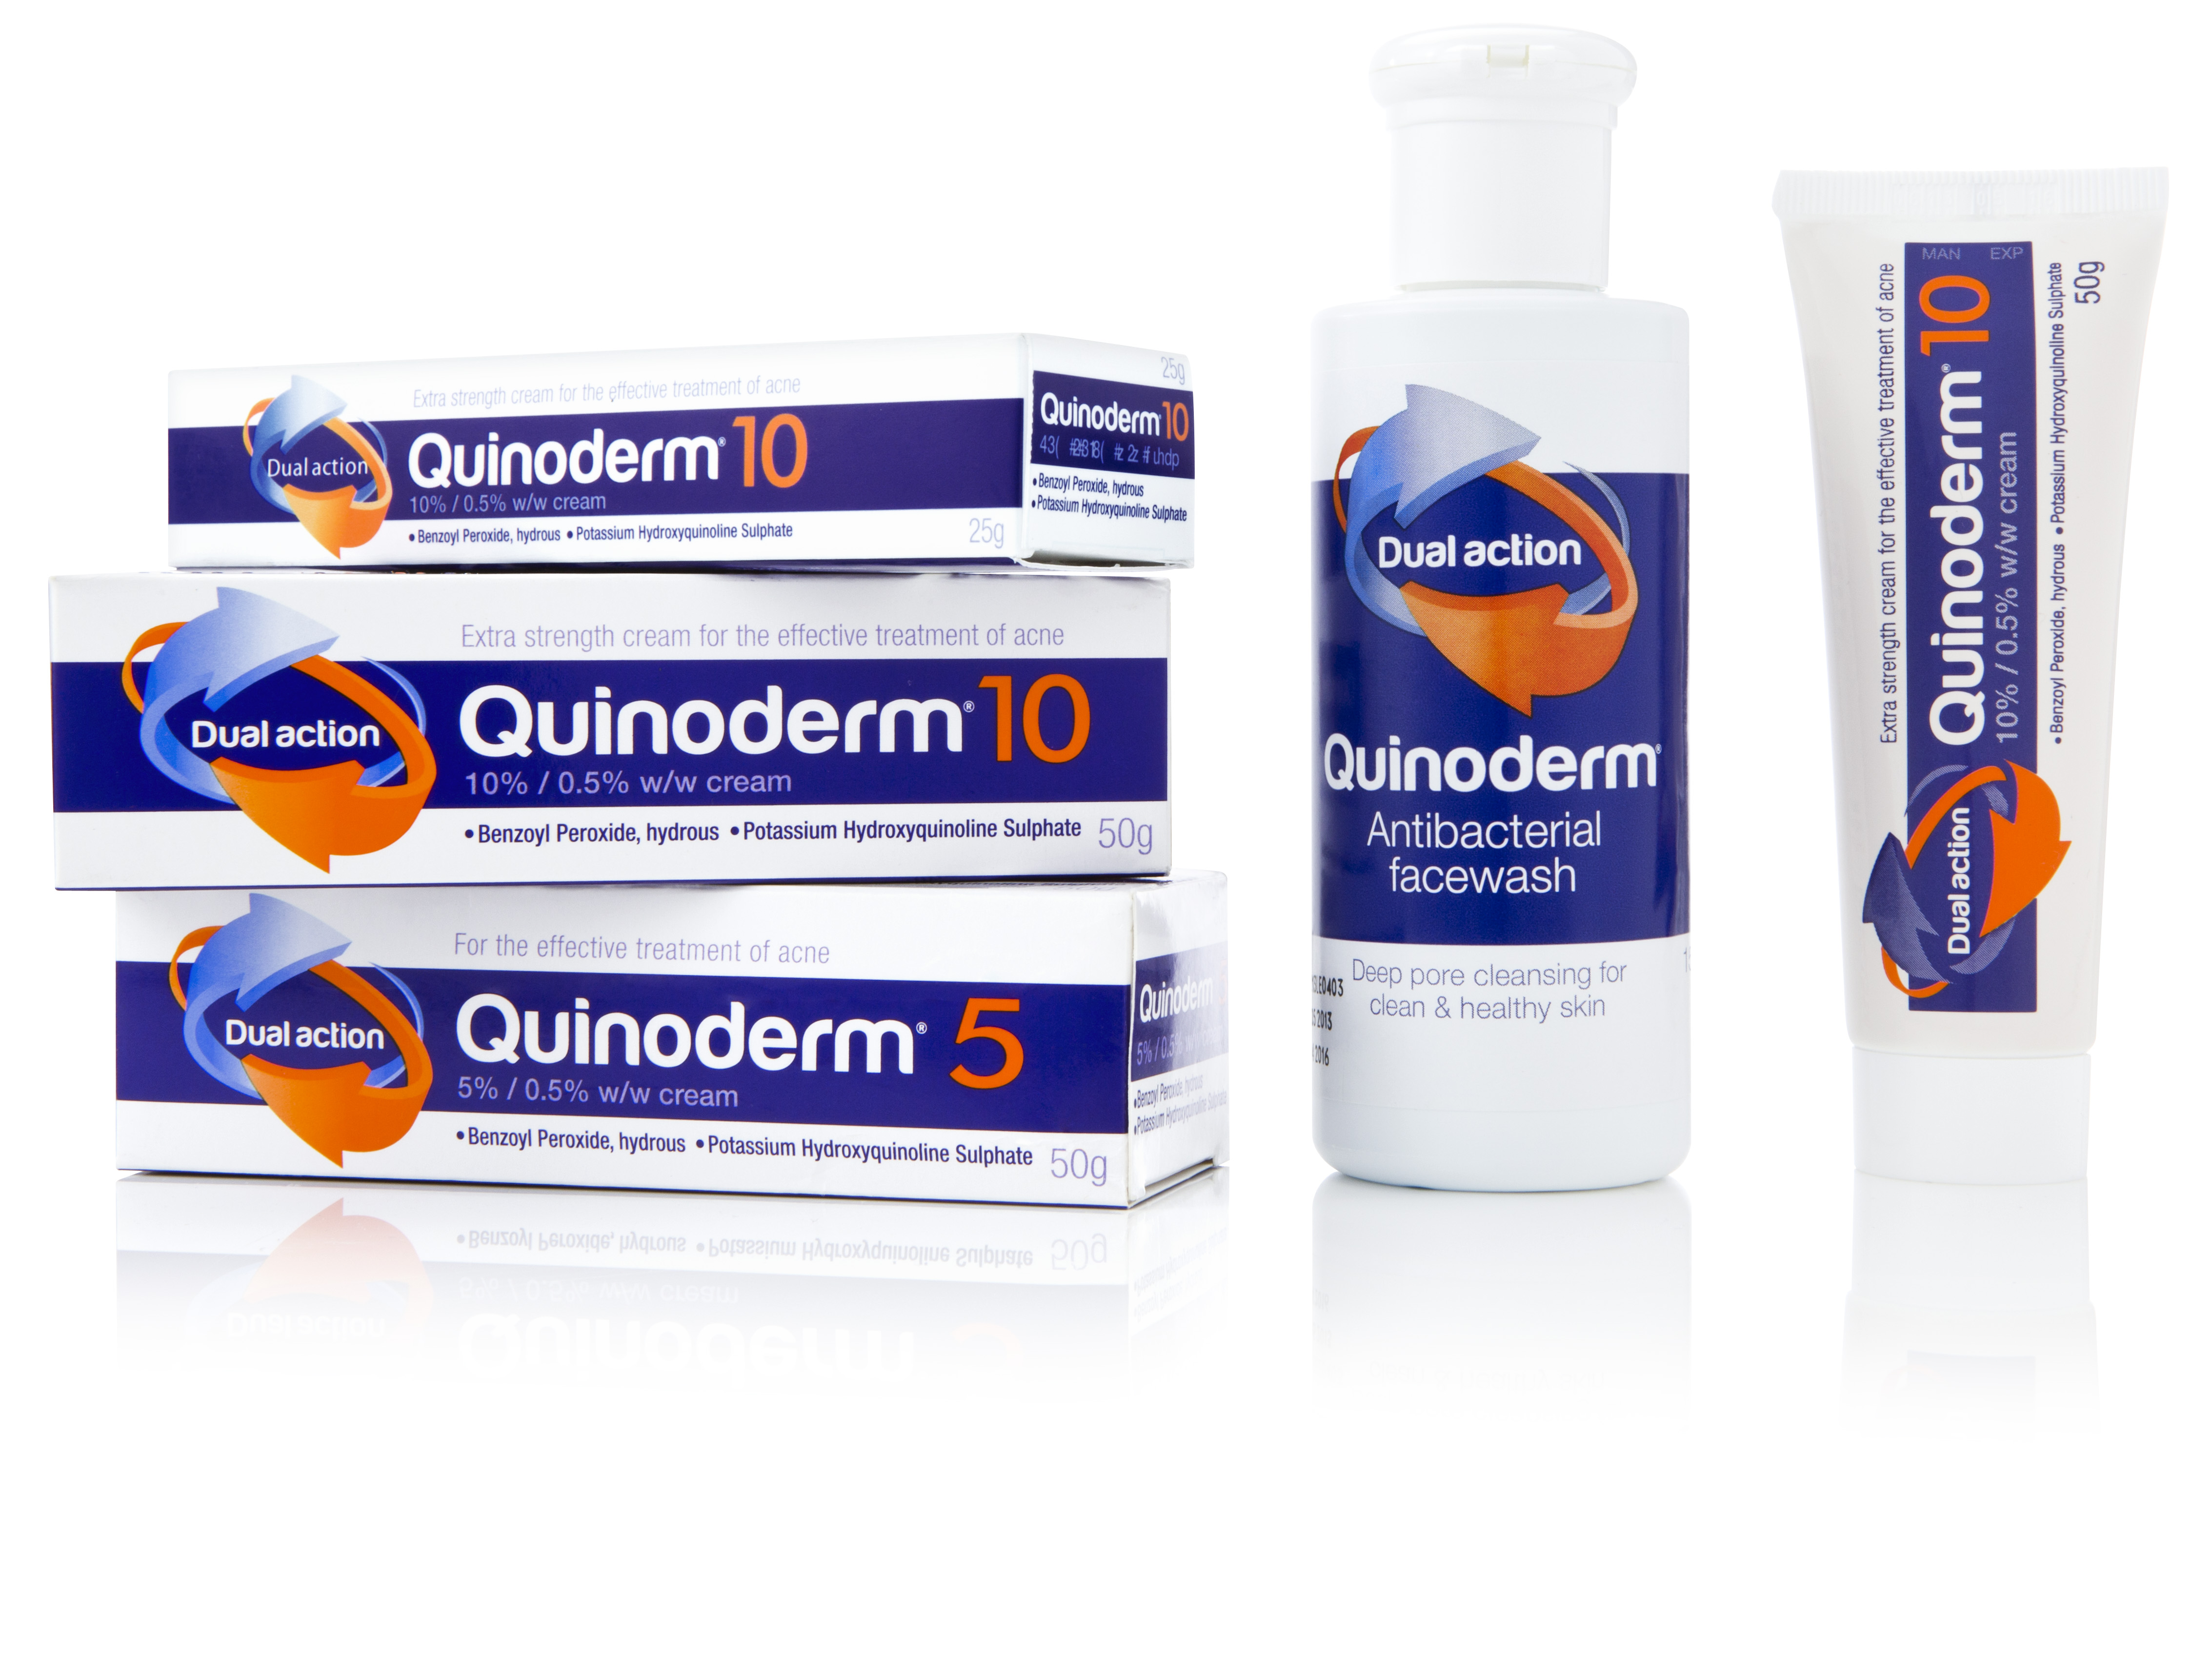 Photo: Packaging for the Quinoderm acne treatment